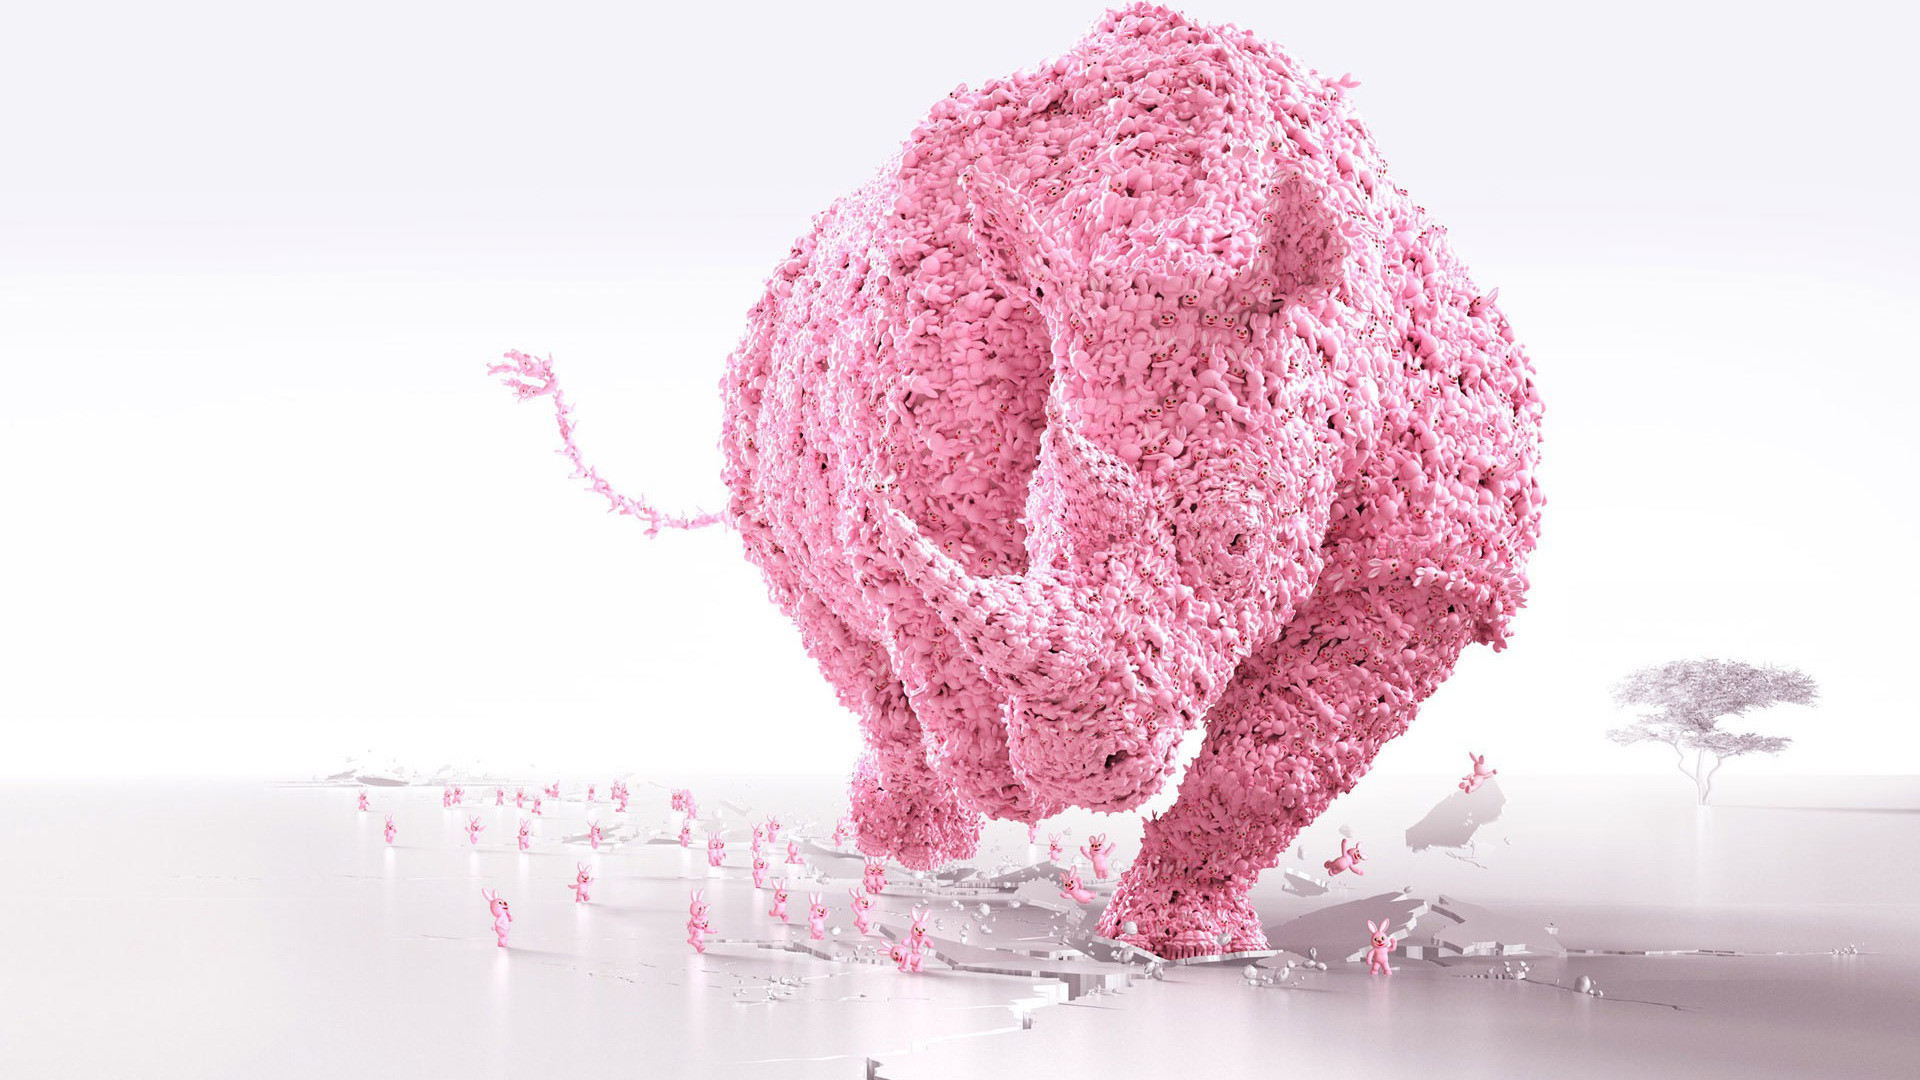 Download Pink bunny uniting as a rhino wallpaper